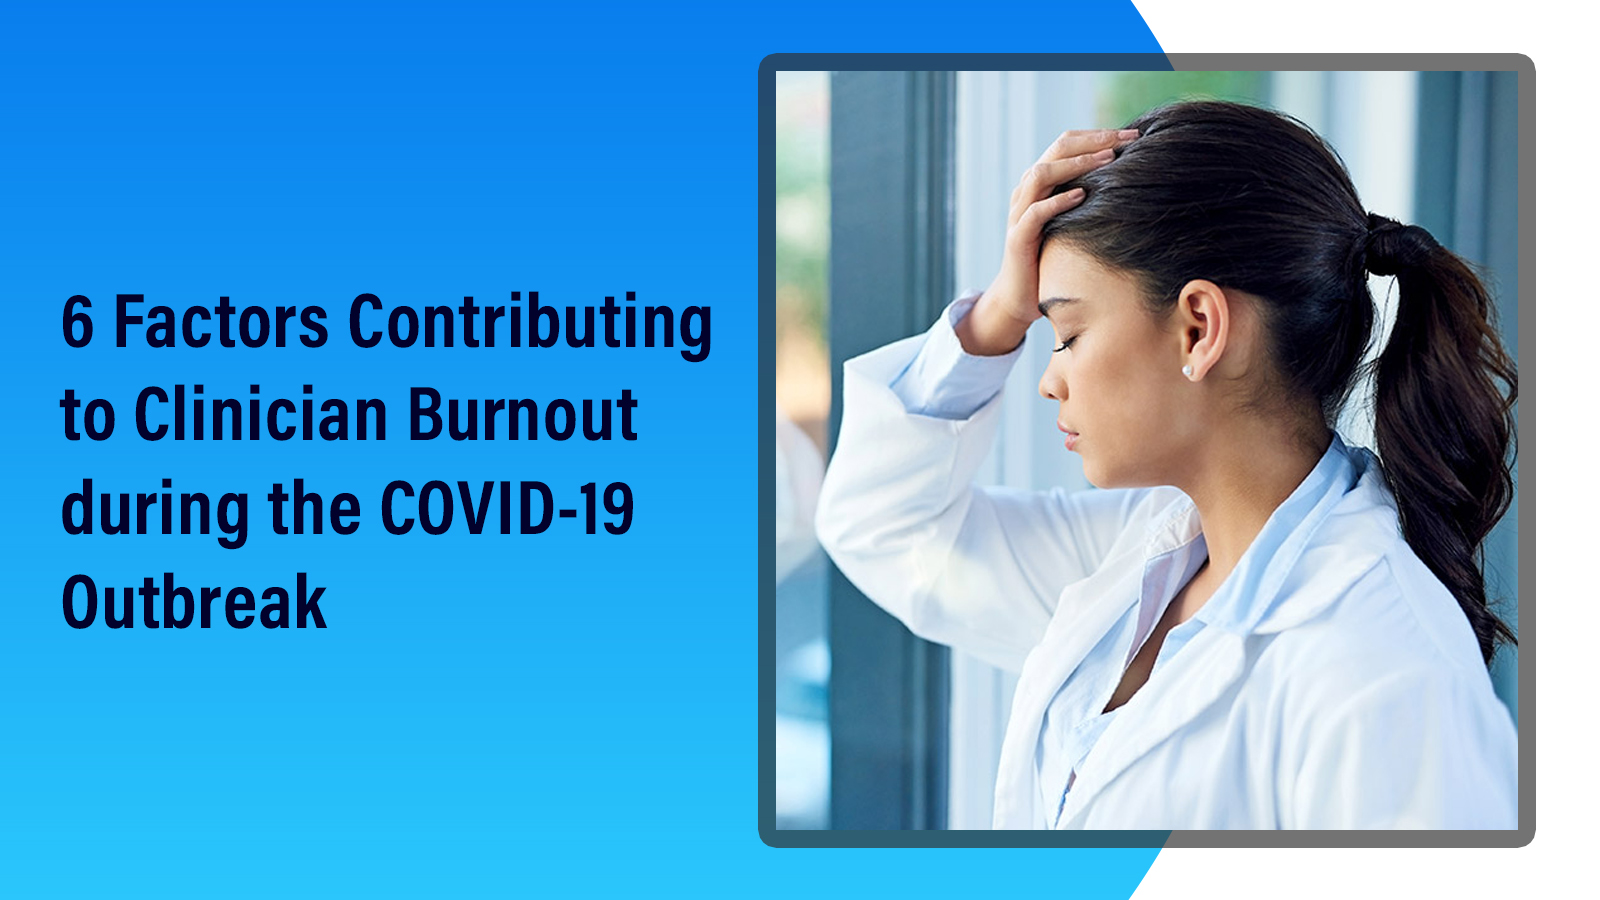 Factors Contributing to Clinician Burnout during the COVID-19 Outbreak